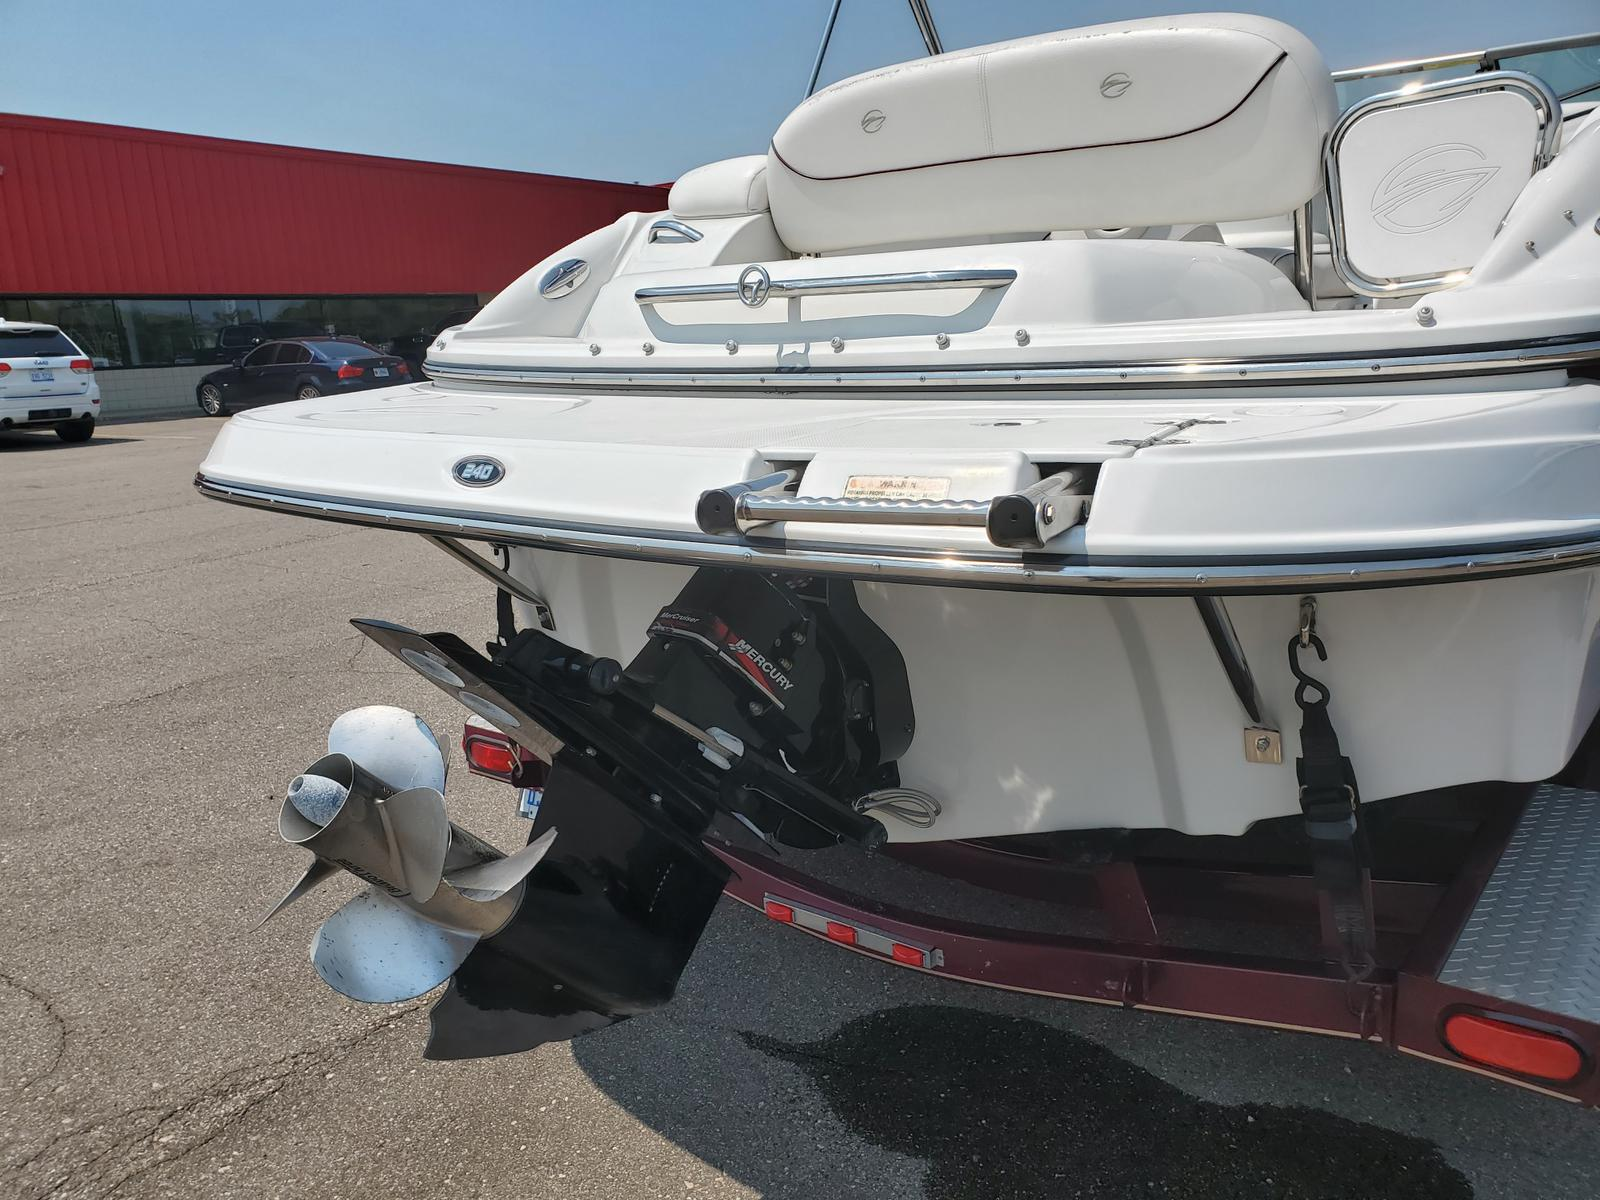 2004 Crownline boat for sale, model of the boat is Deck Boat 240 EX & Image # 2 of 12